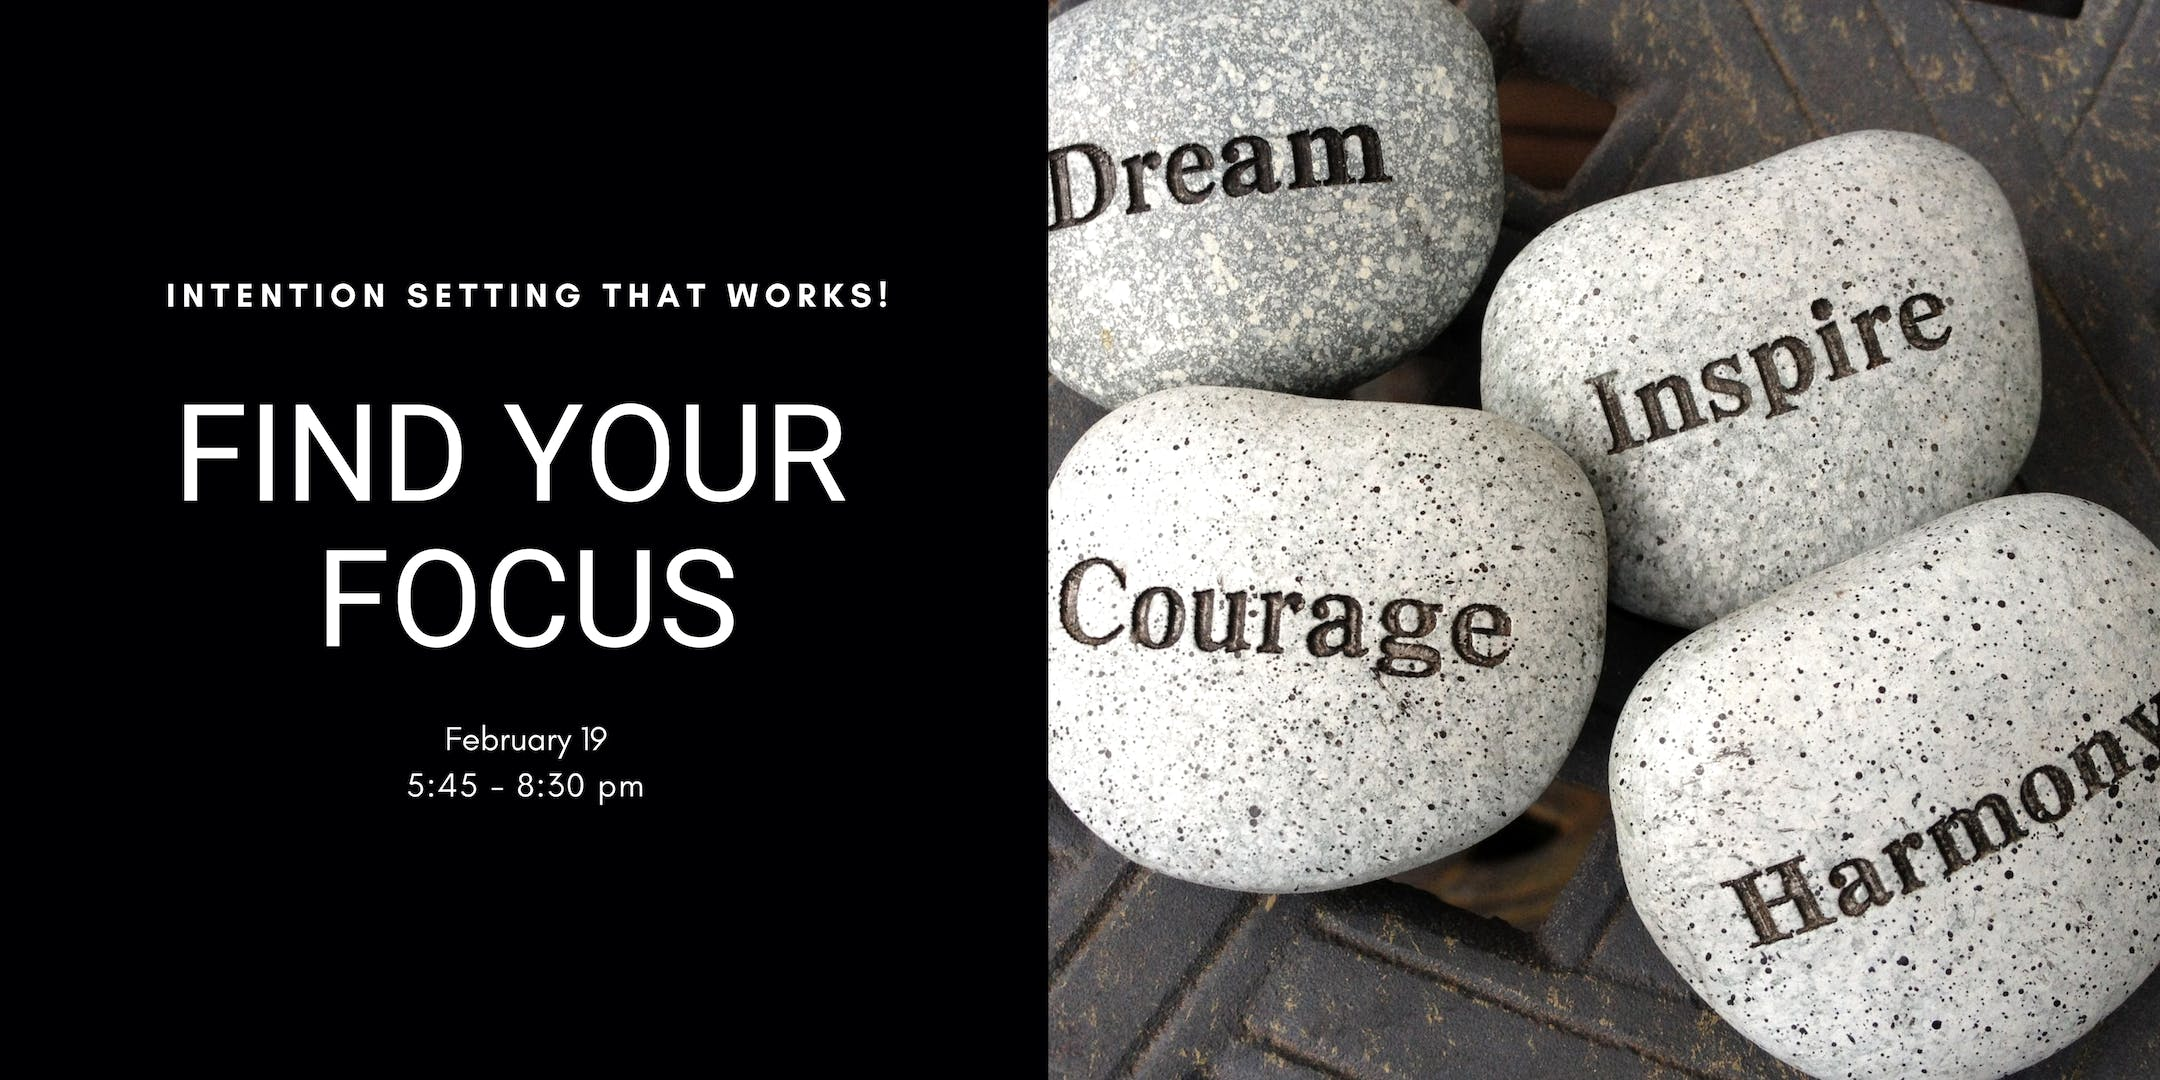 Find Your Focus - Intention Setting Workshop